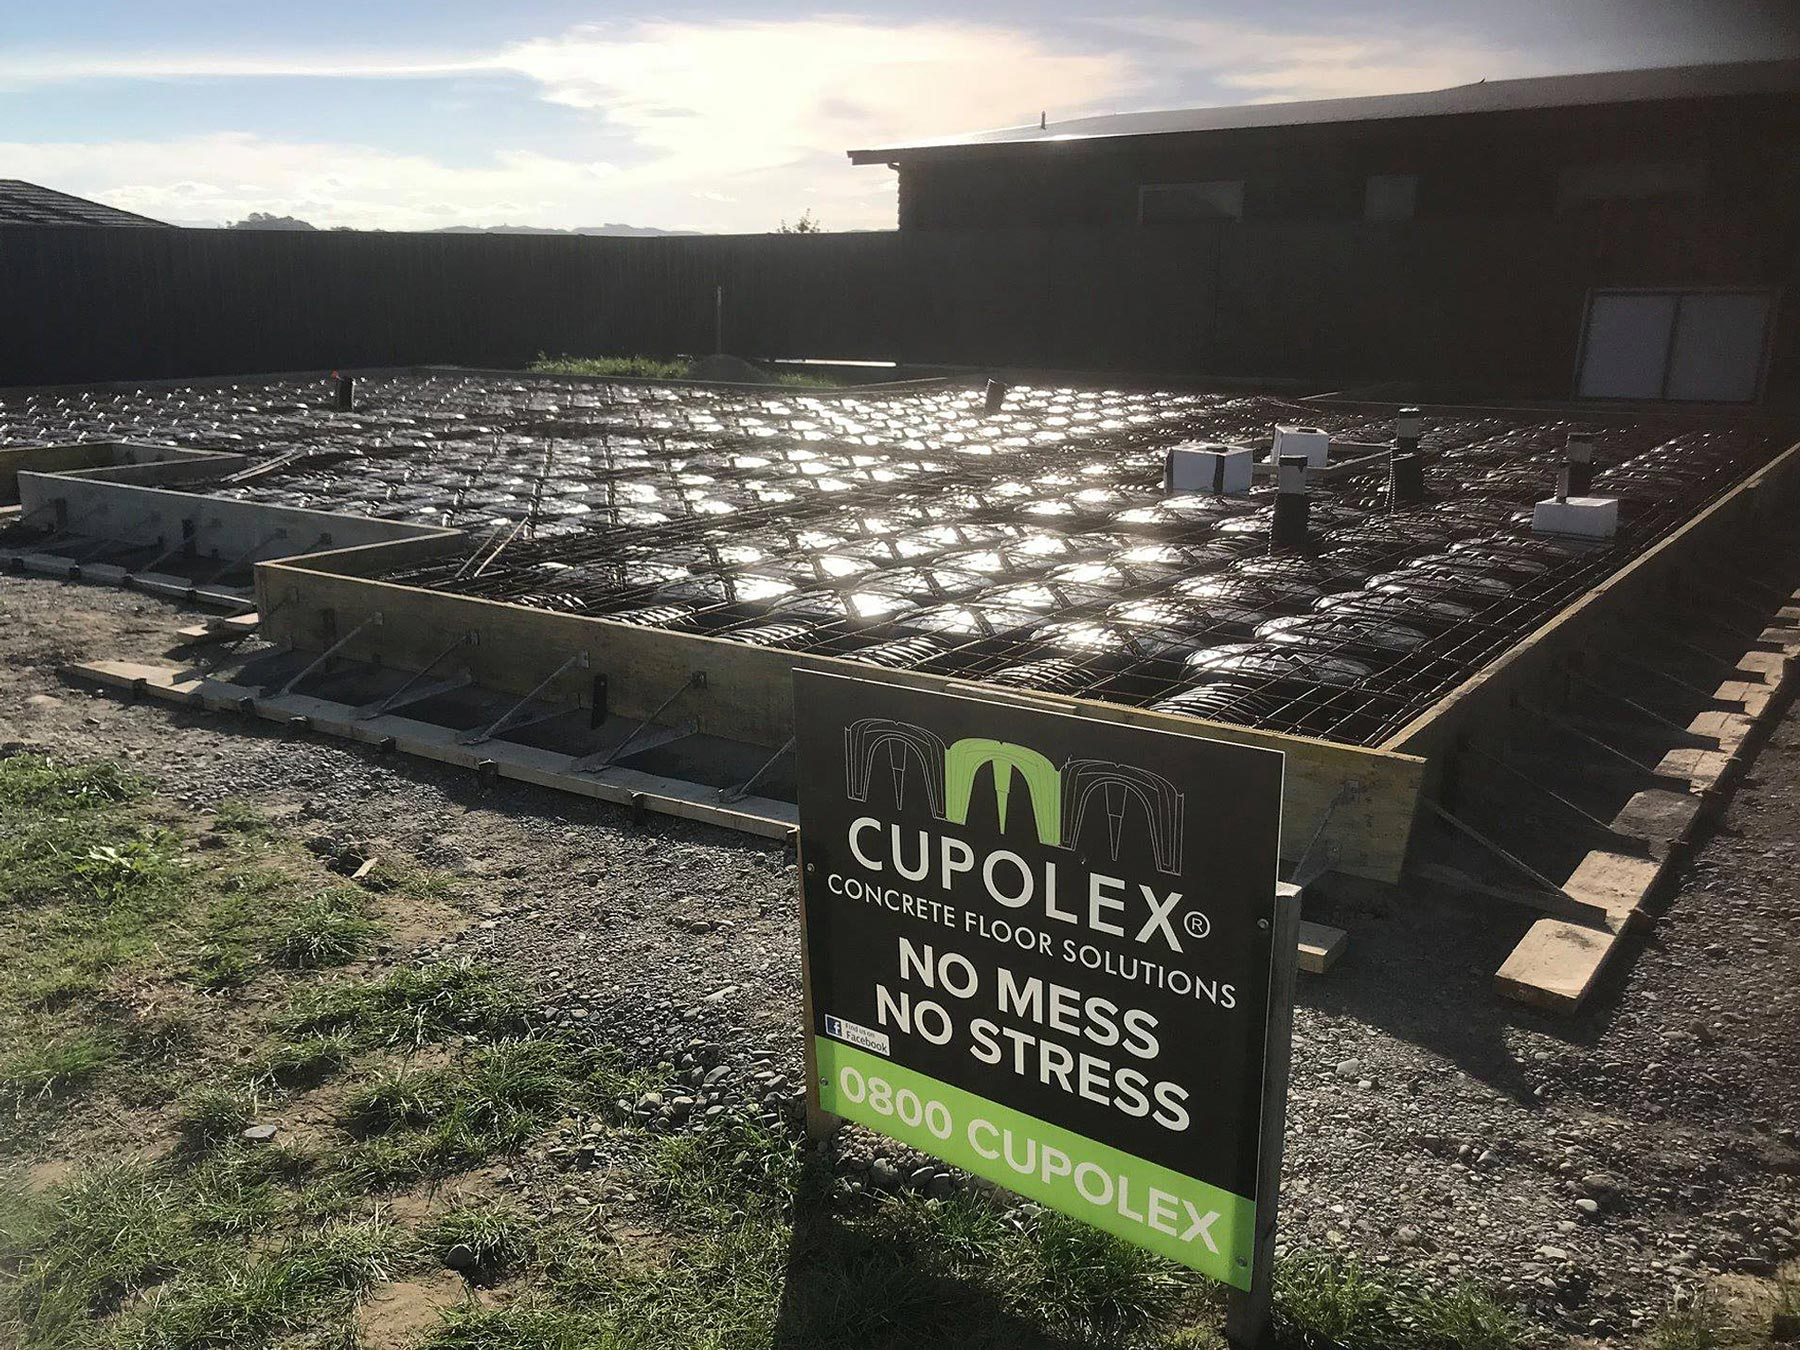 cupolex floor at sunset ready for concrete pour